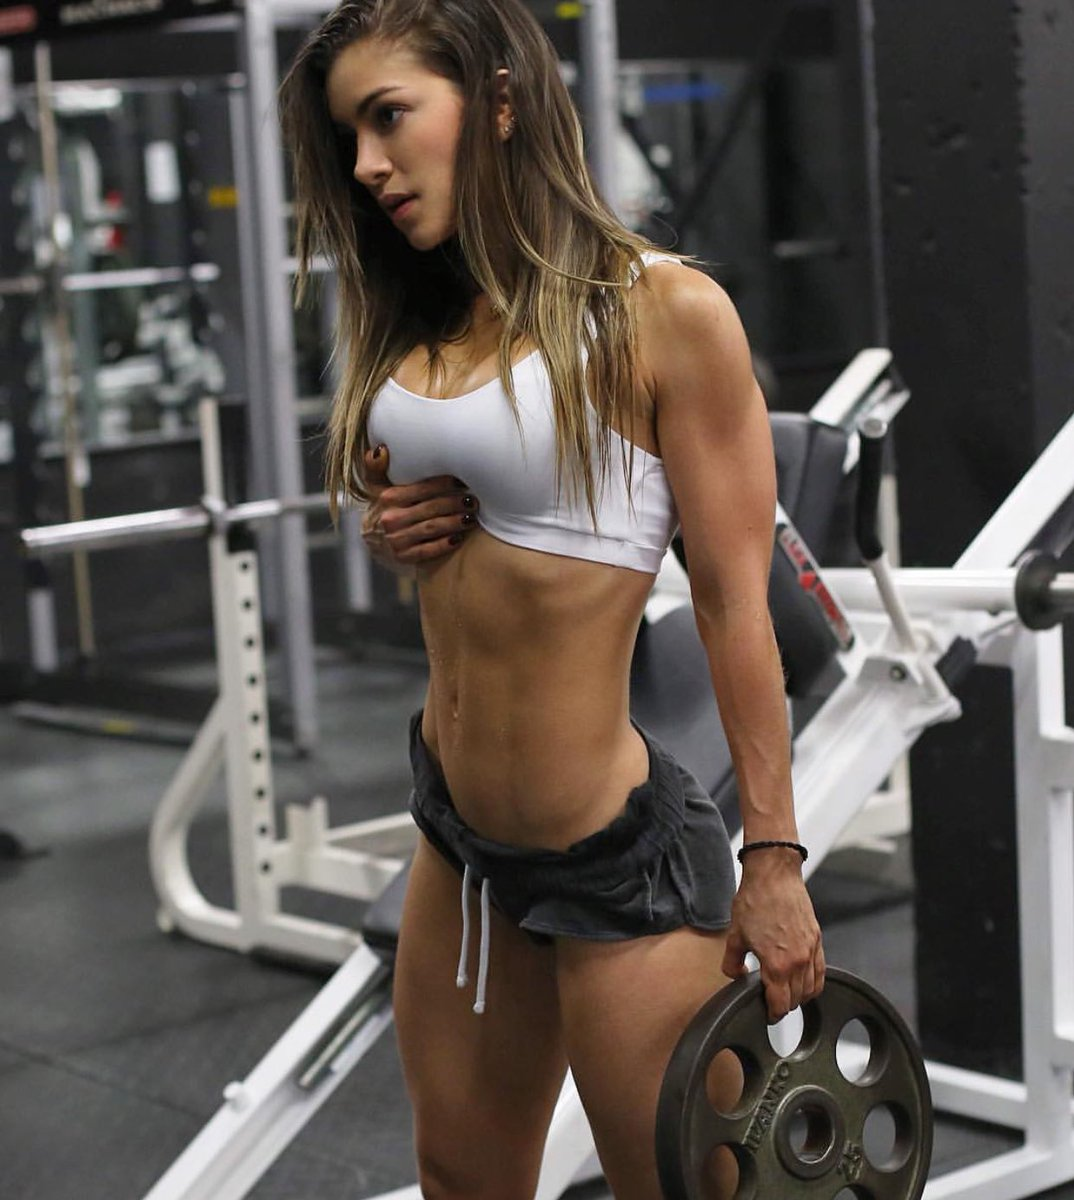 Anllela Sagra Colombian fitness babe hot photos 2017 2